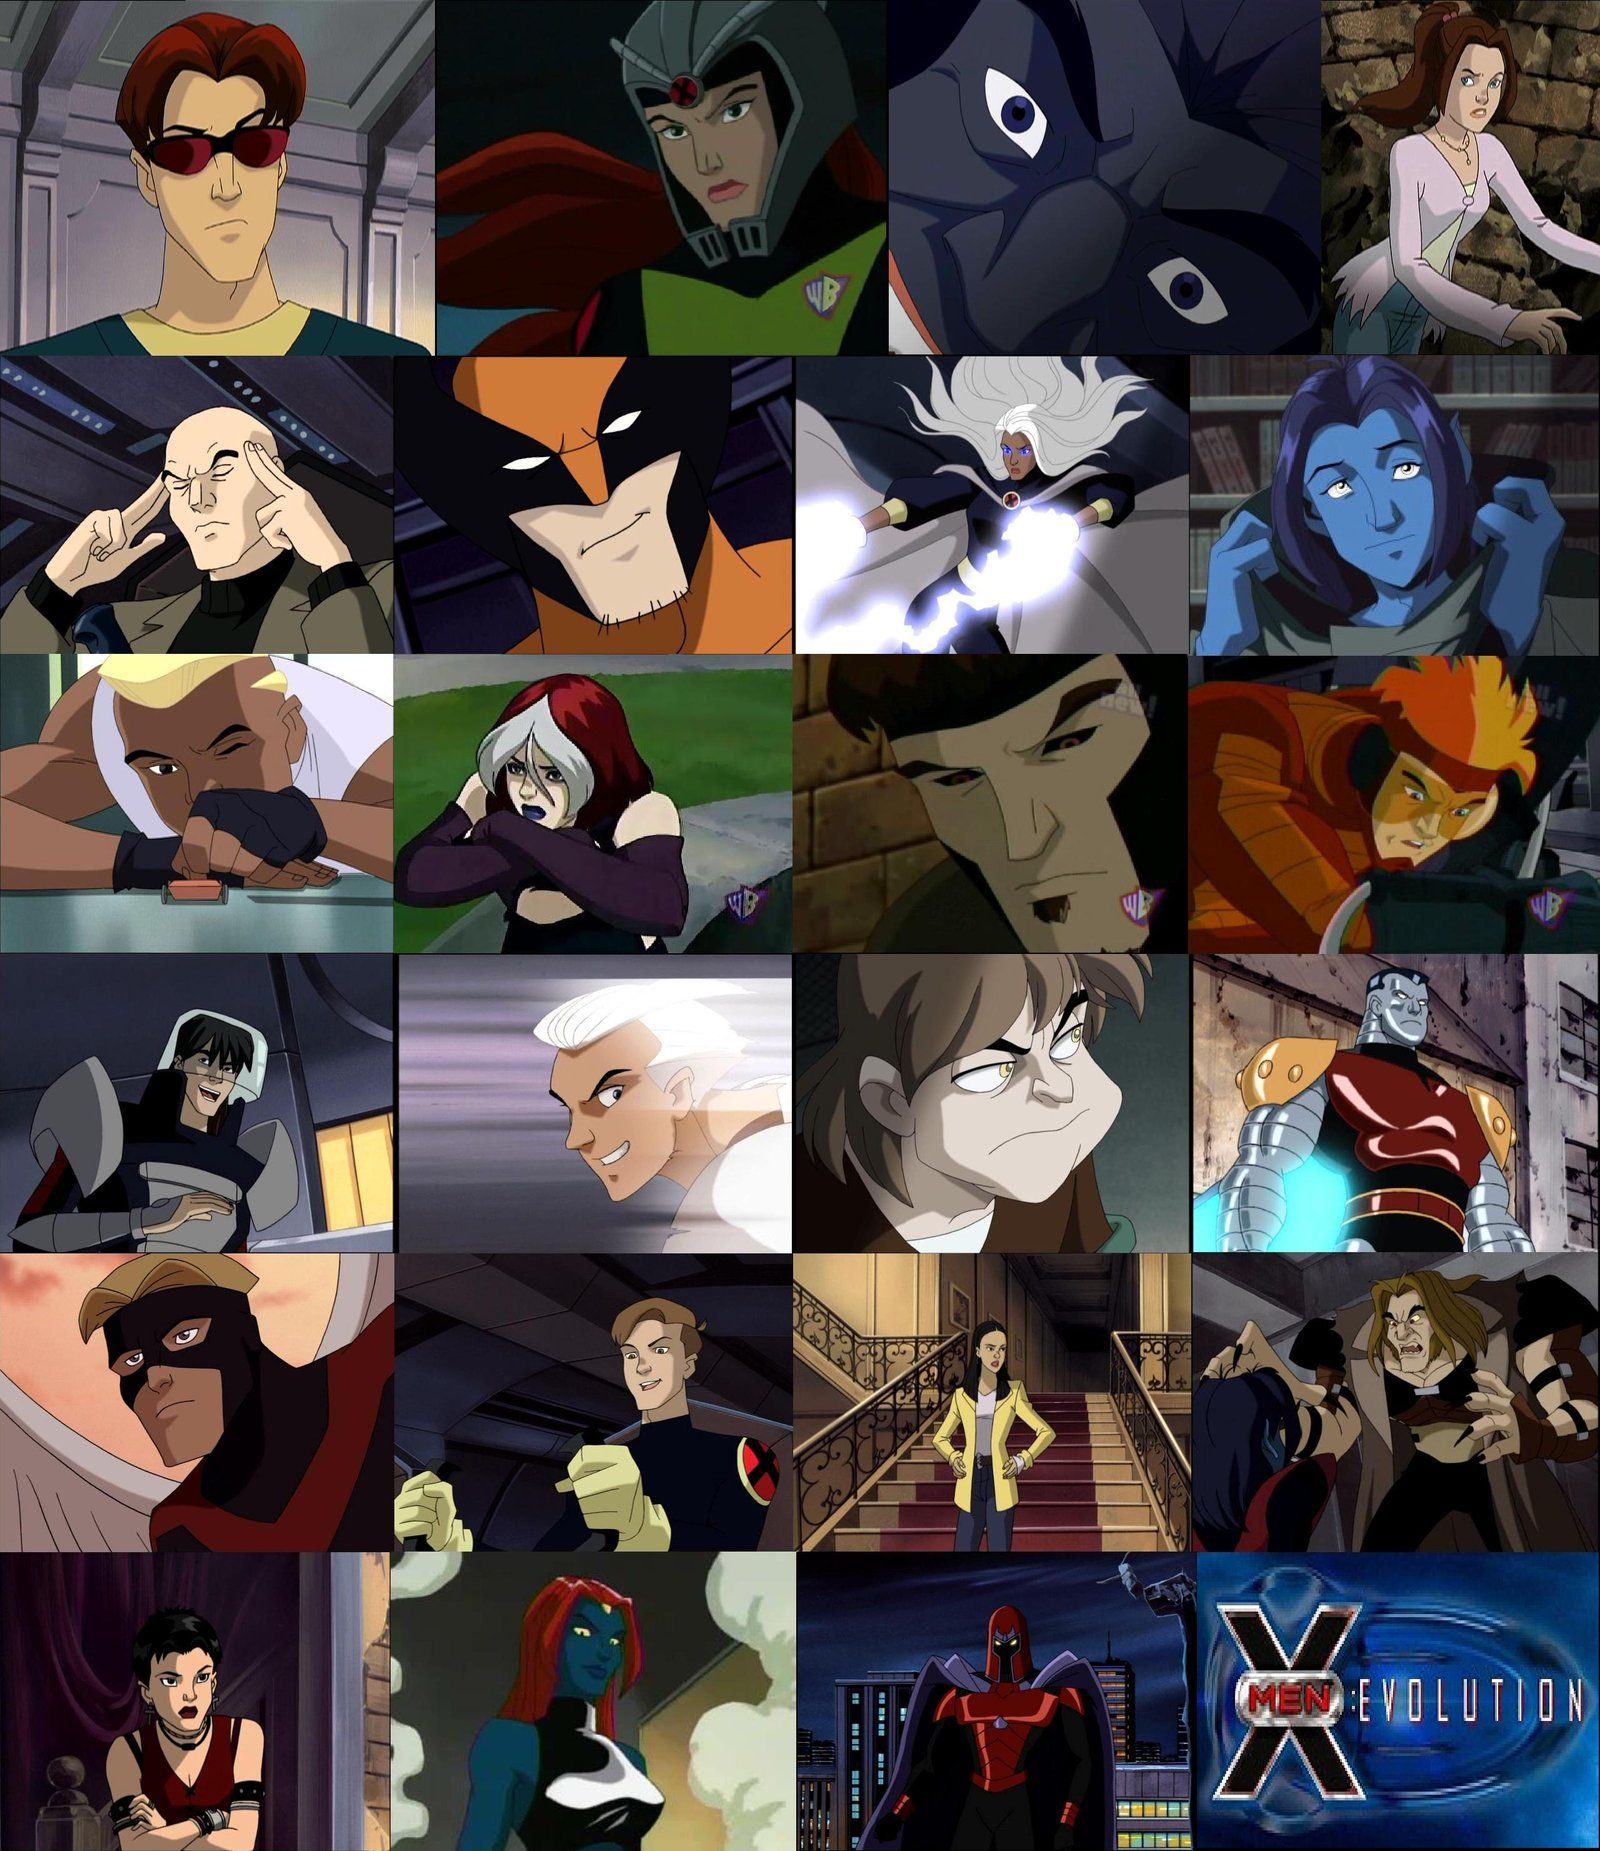 X Men Evolution Characters By The Rogue Whisper On Deviantart X Men Evolution X Men Wolverine Xmen